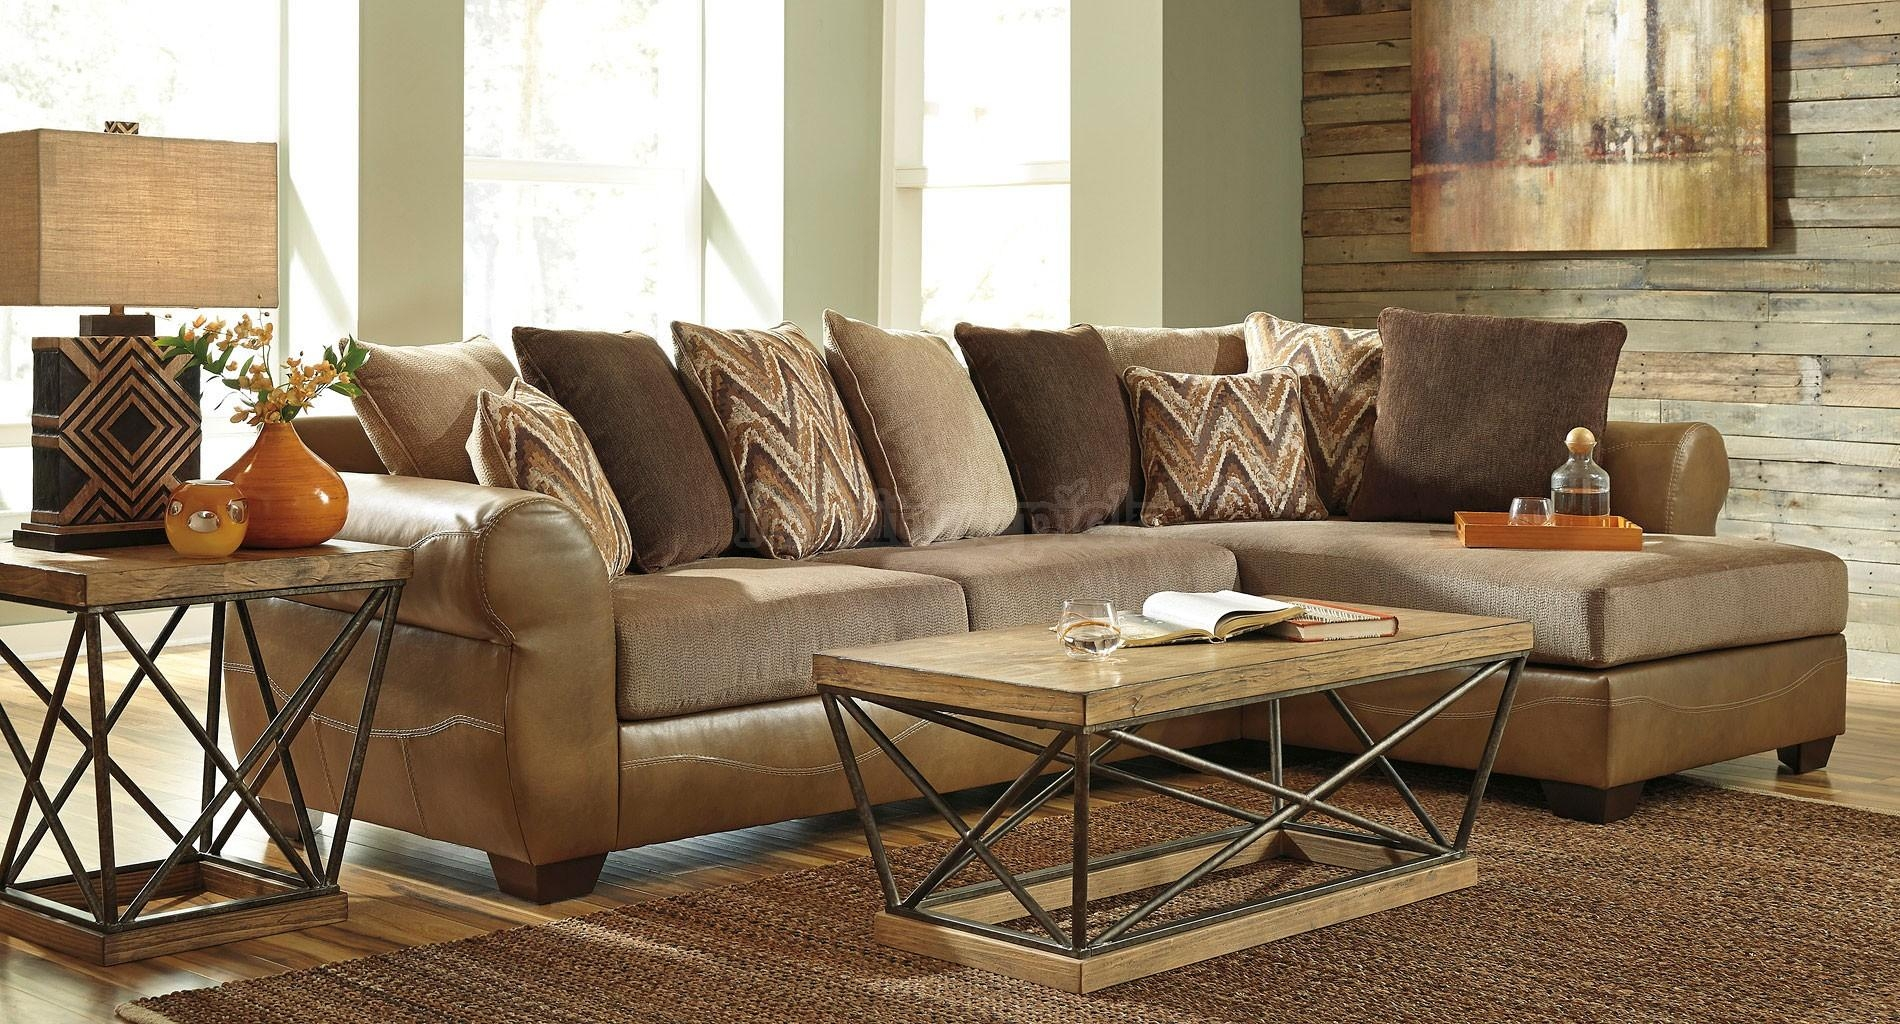 Mini Sectional Sofa Wholesalerssofa Sectionals Sale Tags : 51 Rare Regarding Mini Sectionals (Image 10 of 20)